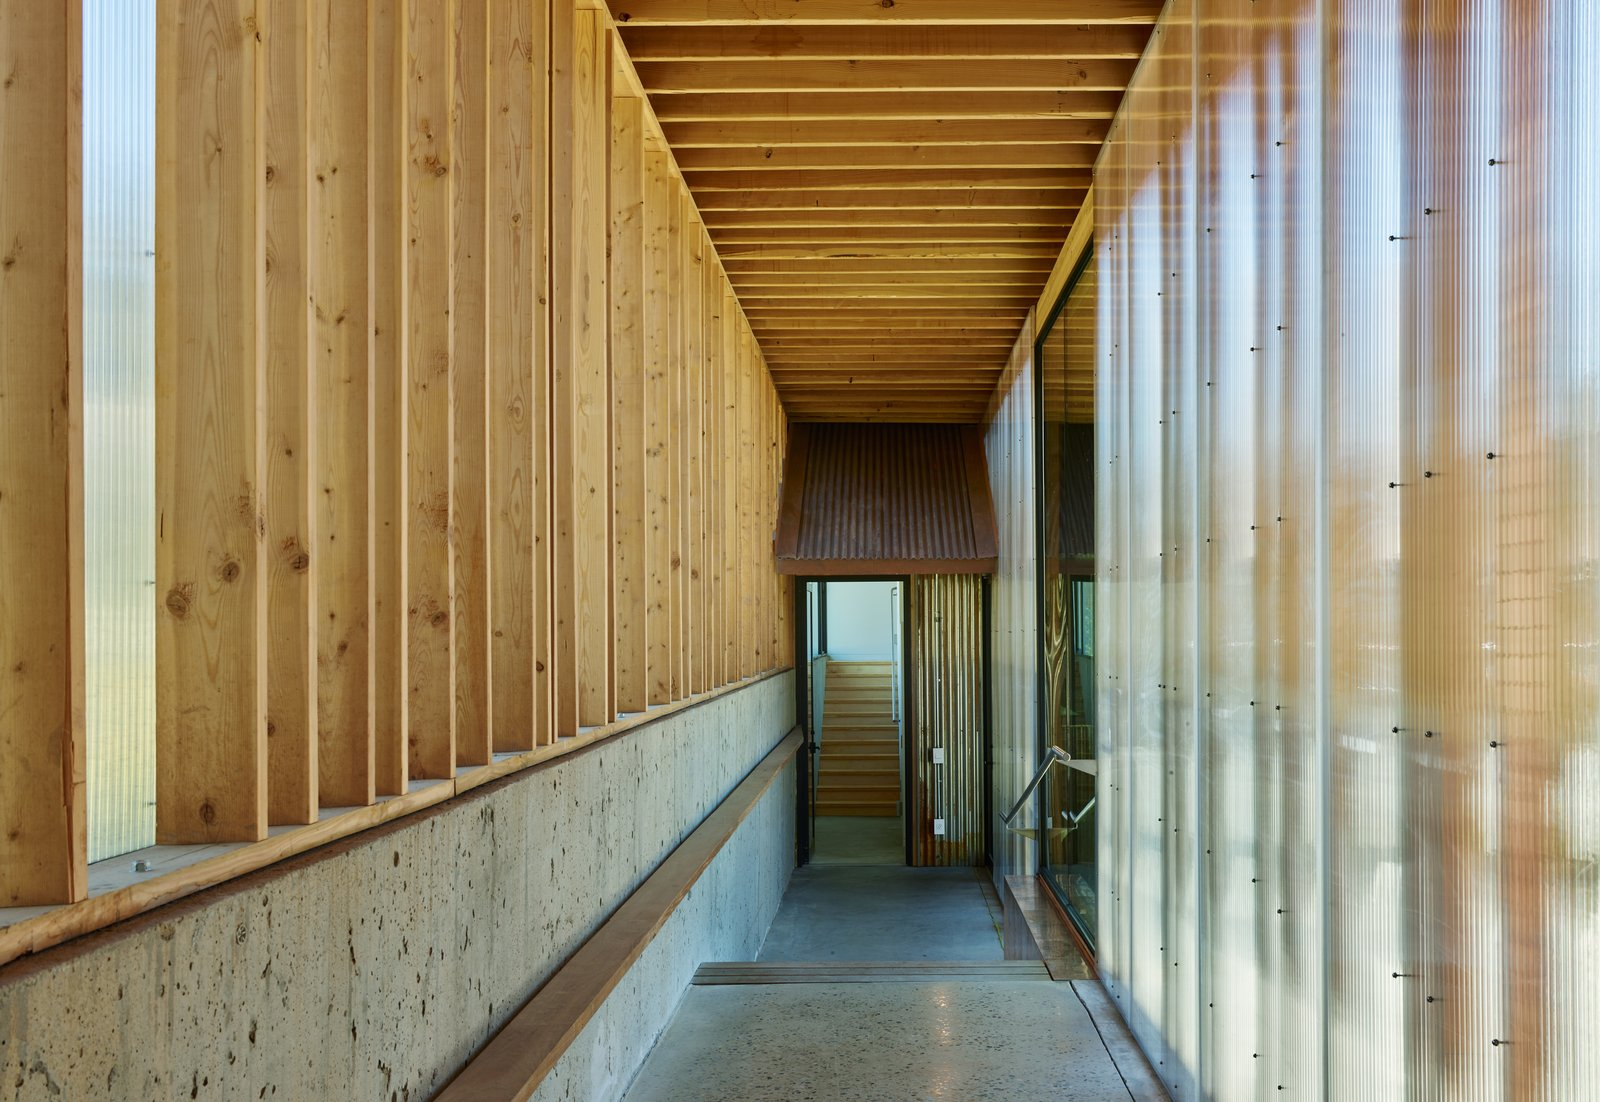 Hallway and Concrete Floor Simple passageways with polycarbonate glazing, wood framing, and polished concrete floors connect the structures.  Photo 4 of 9 in Self-Regulating Technology Makes Managing This Compound a Breeze